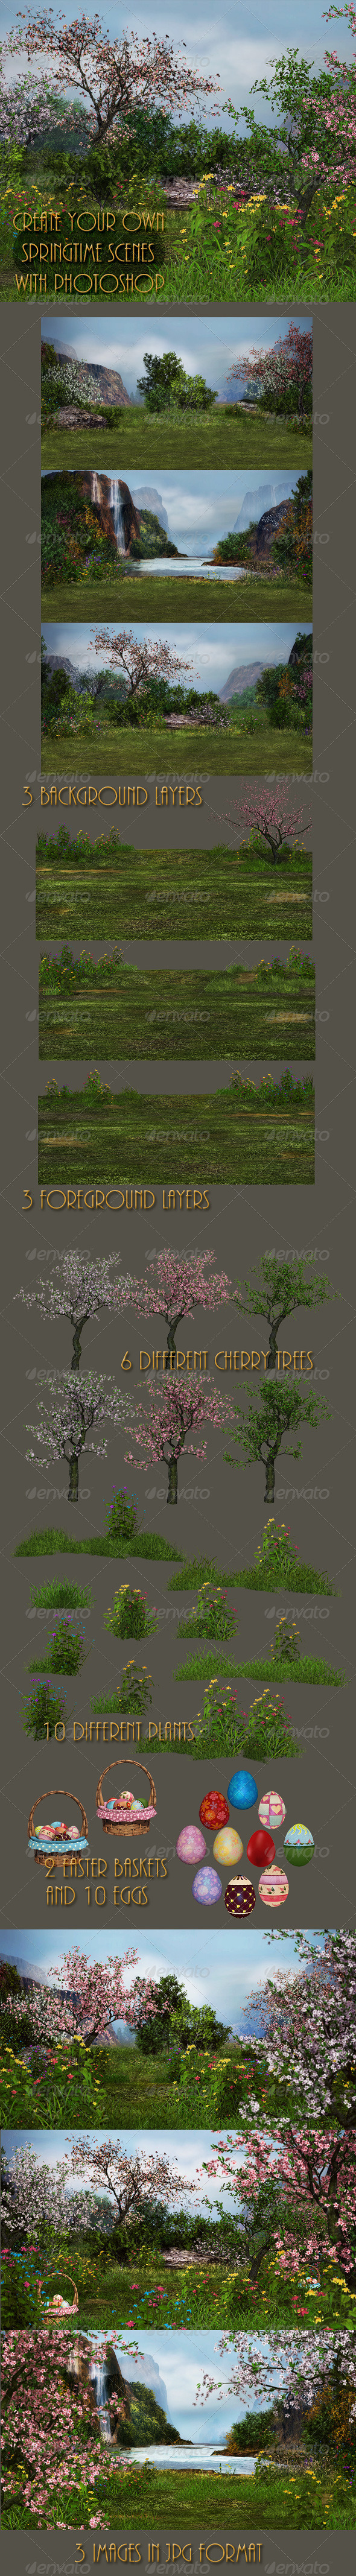 GraphicRiver Springtime in Fairytale Land 7342353